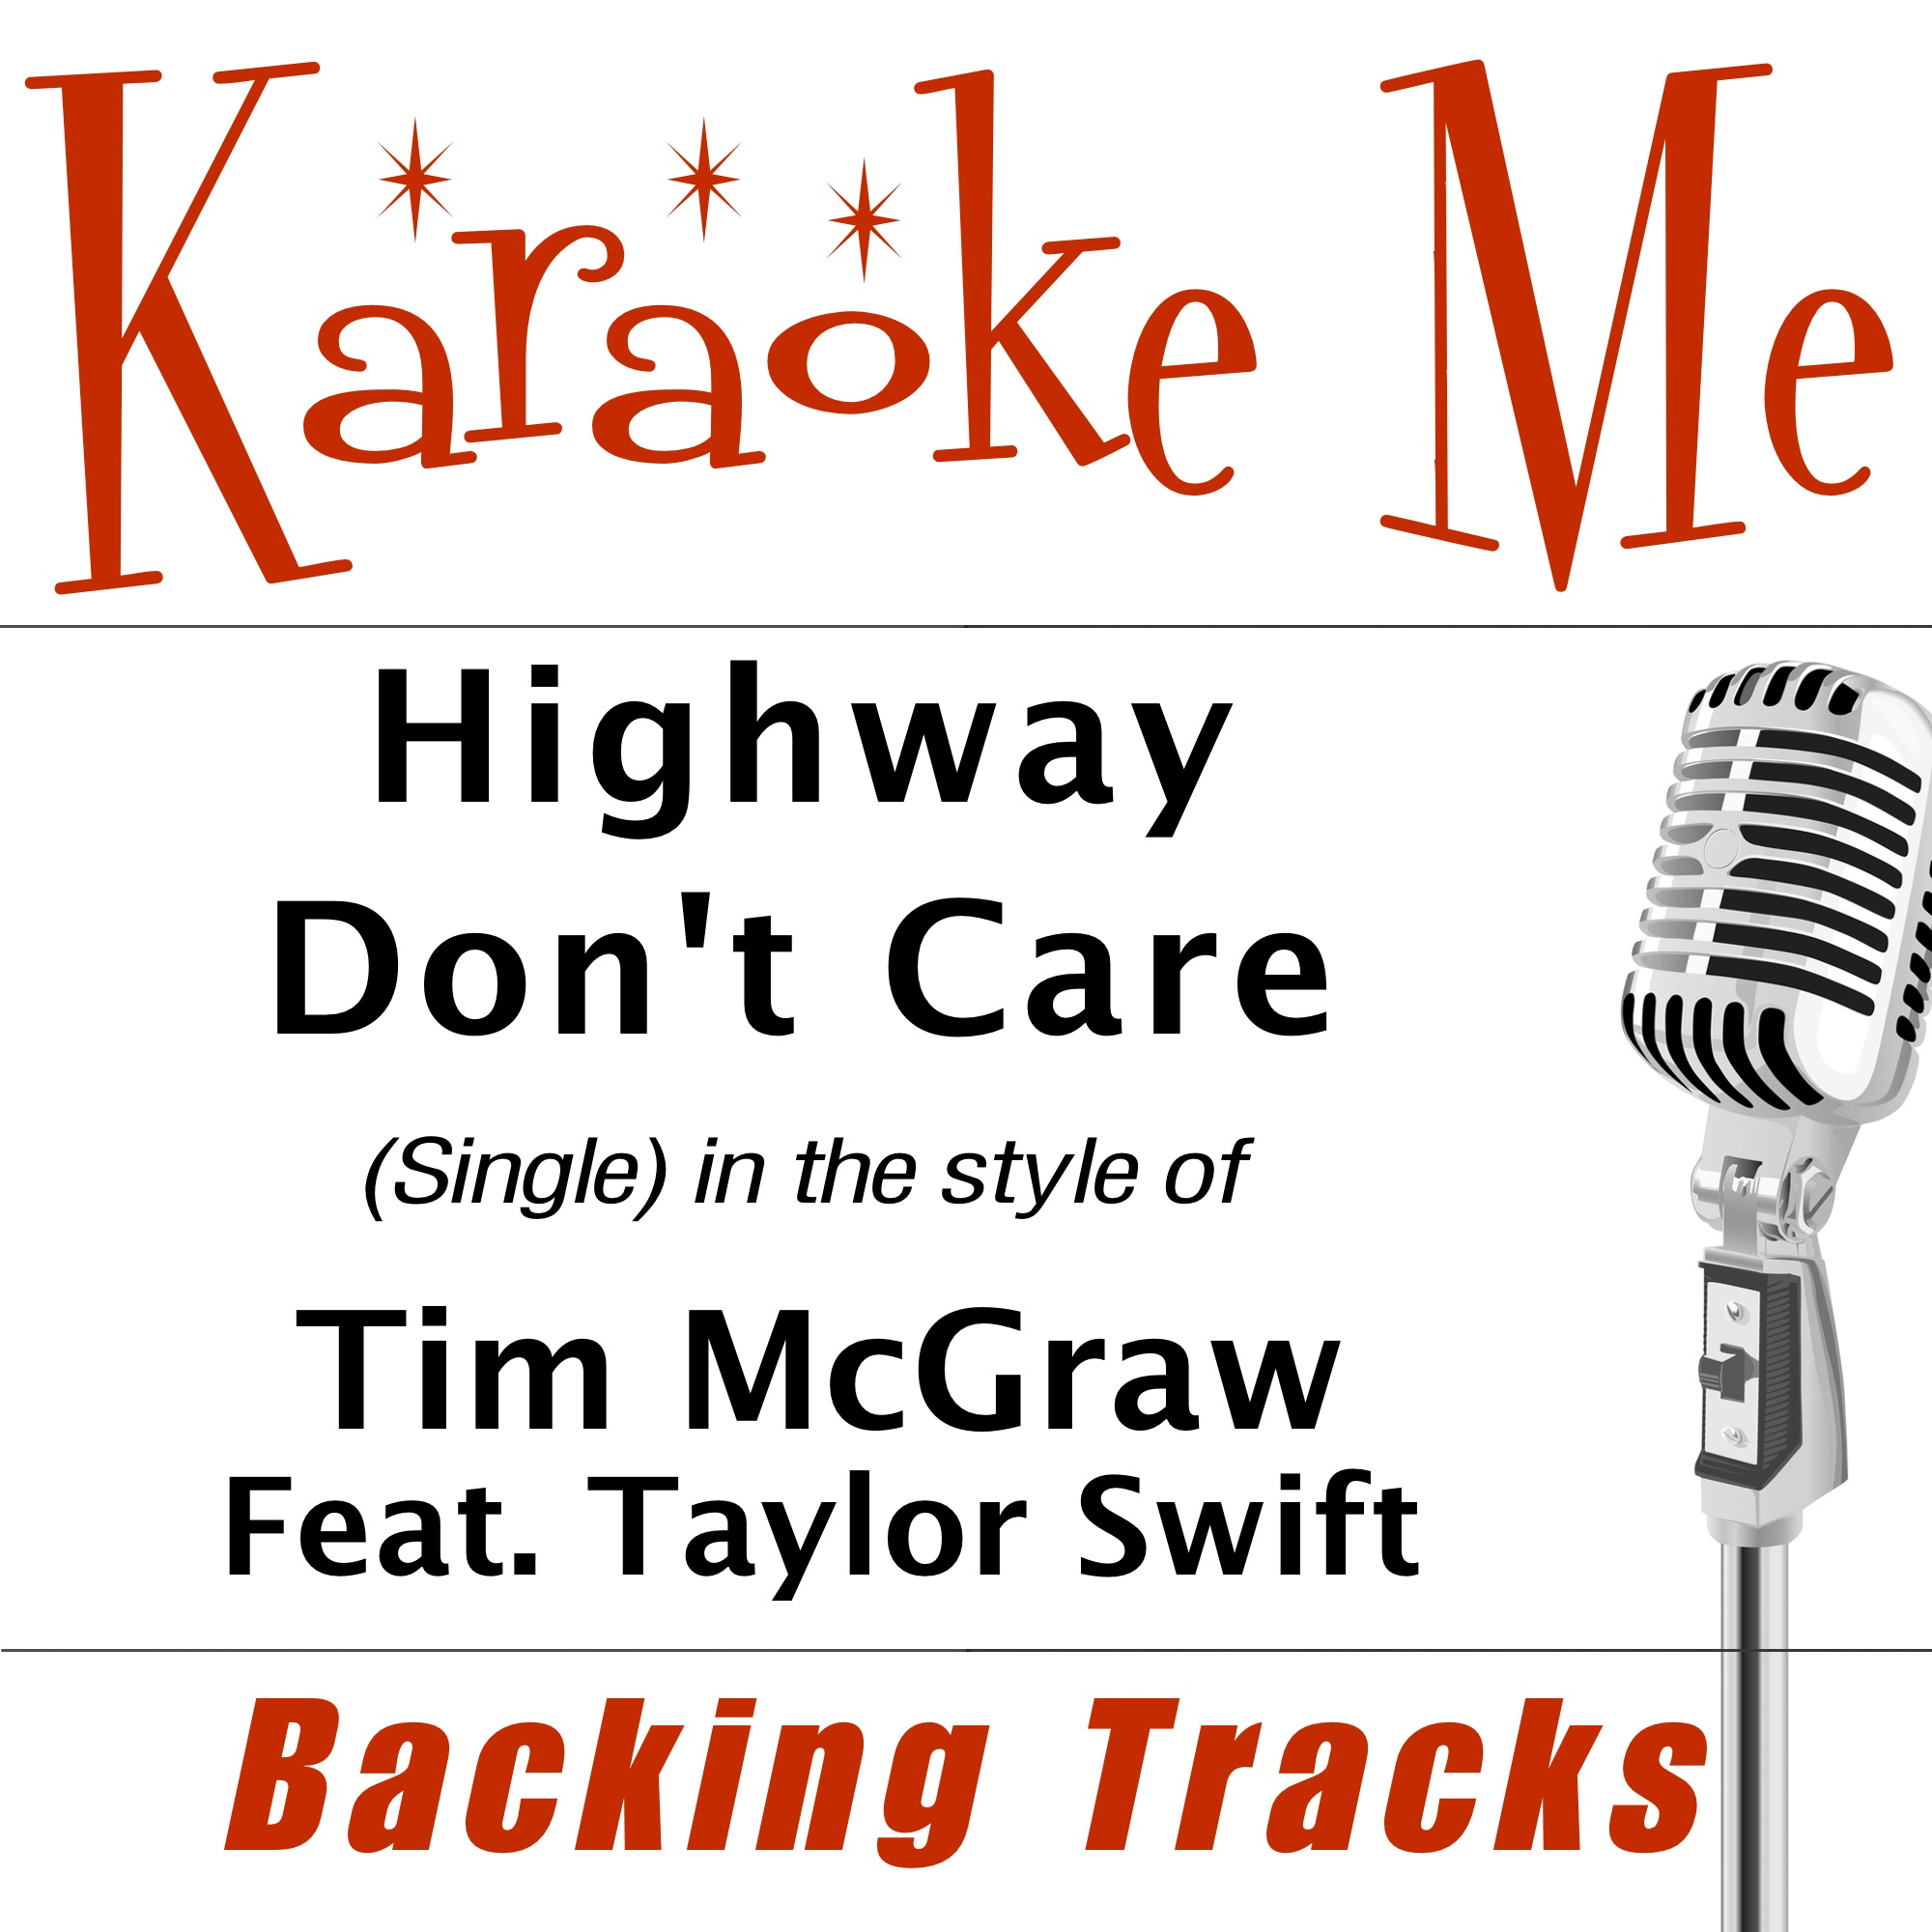 Highway Don't Care (in the style of) Tim Mcgraw Feat. Taylor Swift - Single [Backing Tracks] - Single